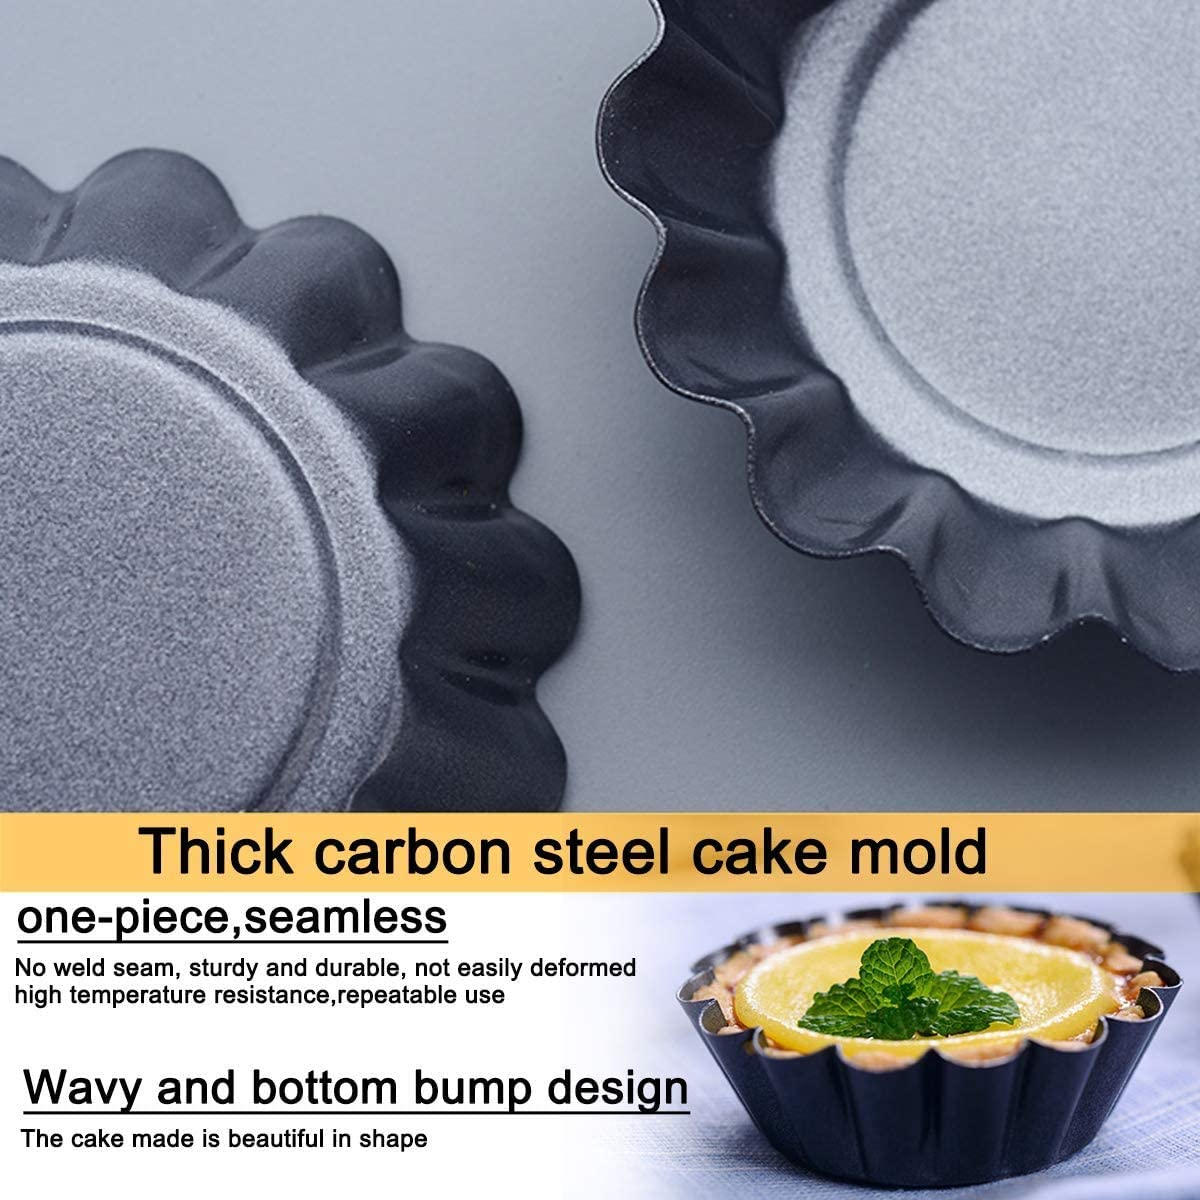 BESTZY Egg Tart Molds,Muffin Cake Mold Carbon Steel,Cheese Cakes Desserts 2.55x1.77x1.26in Quiche pan and More 8 PCS Cupcake Cake Muffin Mold Tin Pan Baking Tool